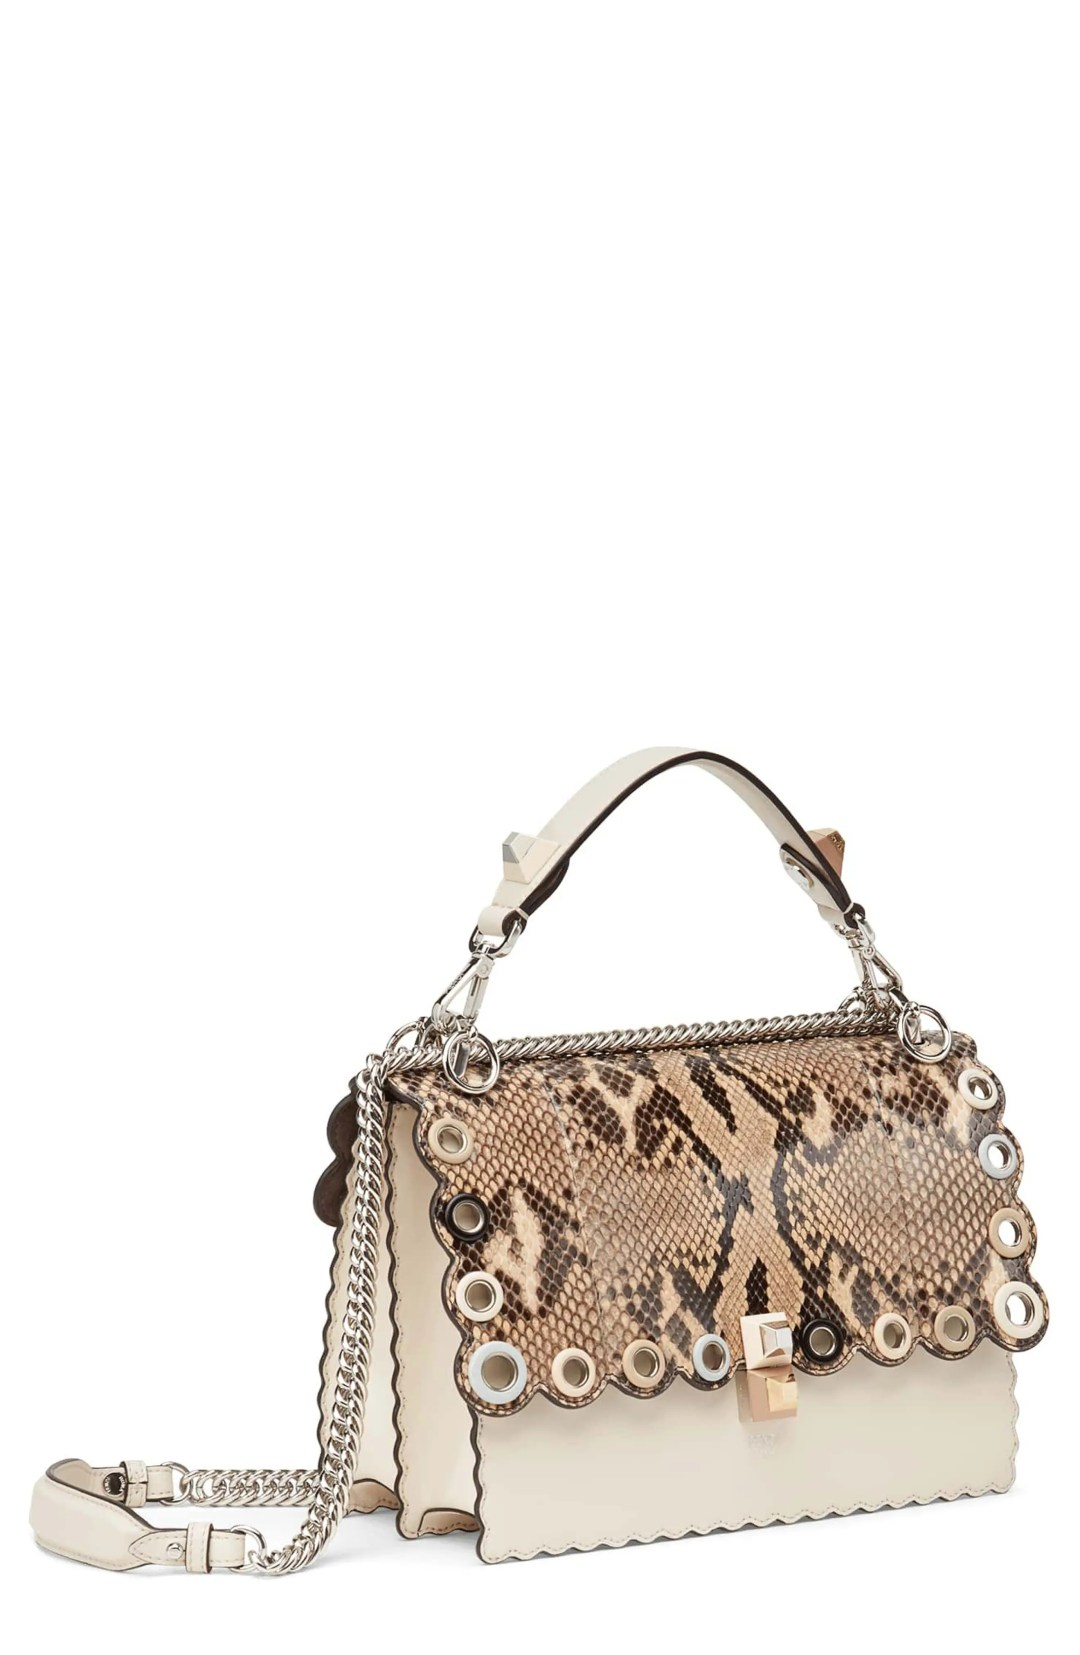 55fe68fae7d8 Fendi Small Kan I Genuine Python   Calfskin Shoulder Bag – – NORDSTROM.com  –  3